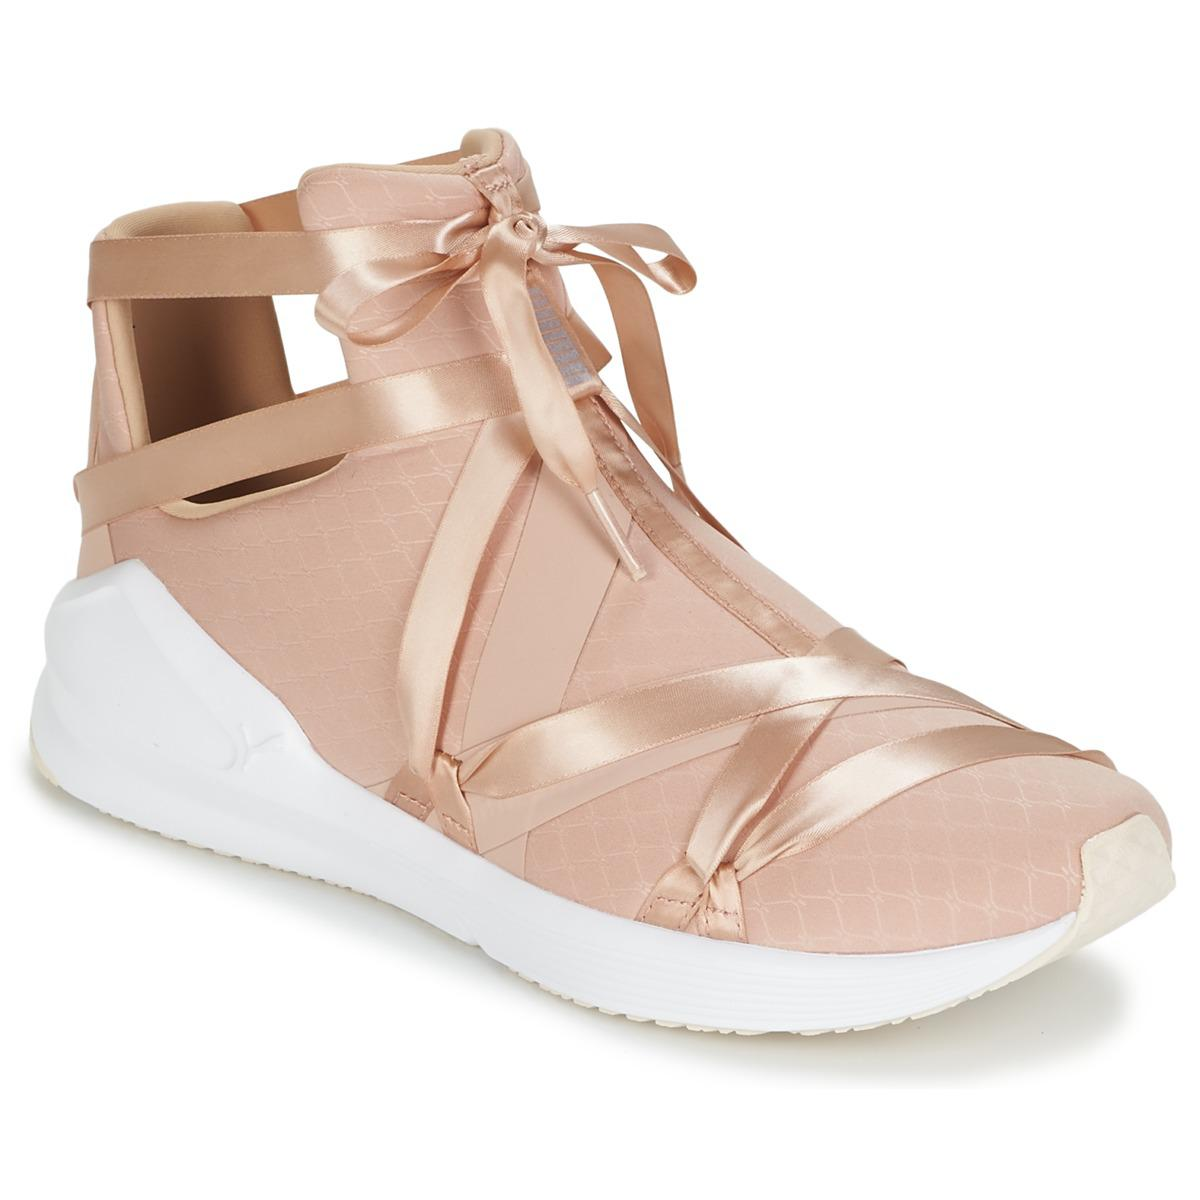 bca4996453f4b2 PUMA Fierce Rope Pointe Wn s Shoes (high-top Trainers) in Pink ...